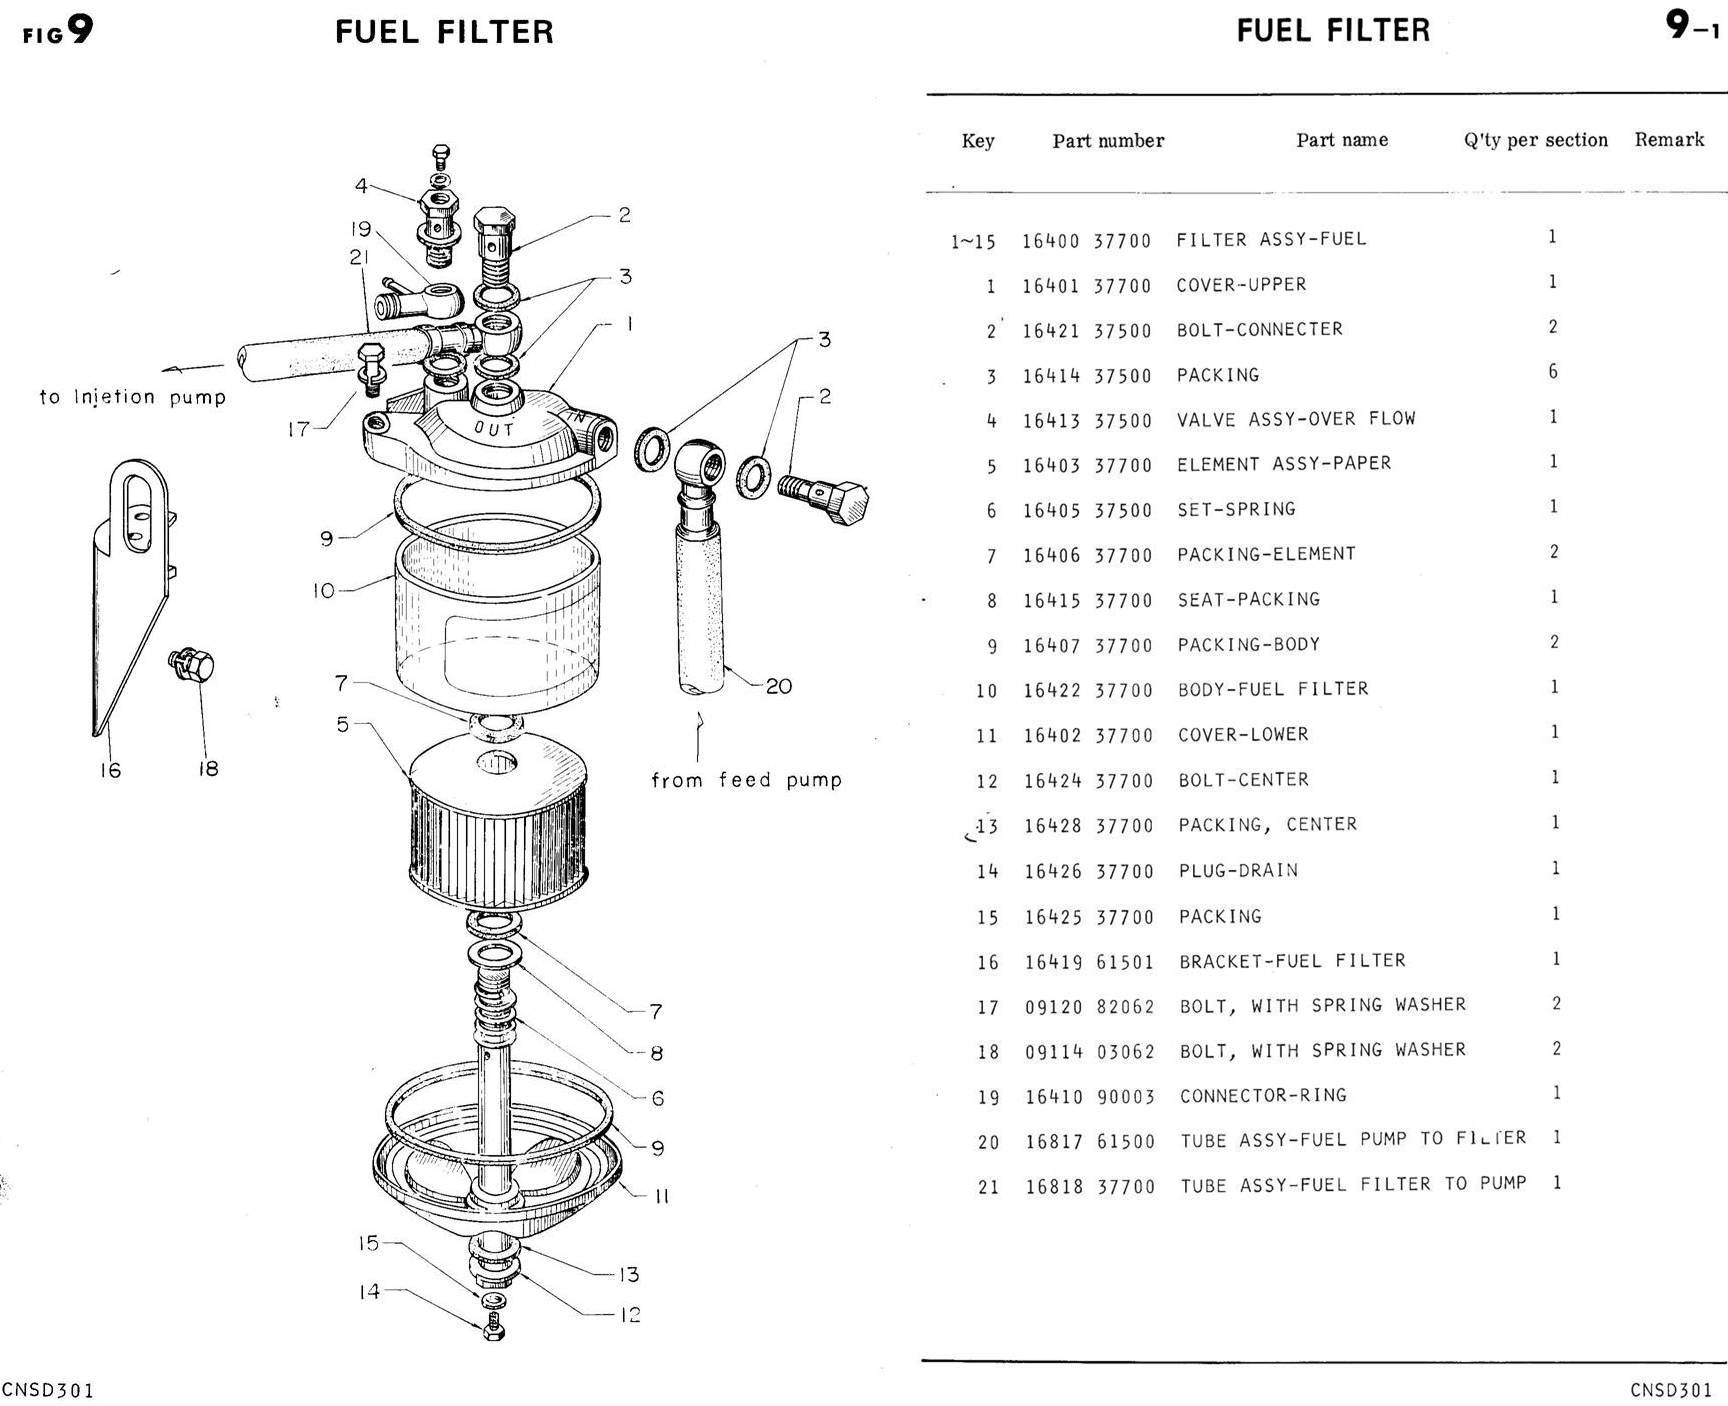 diesel fuel filter canister